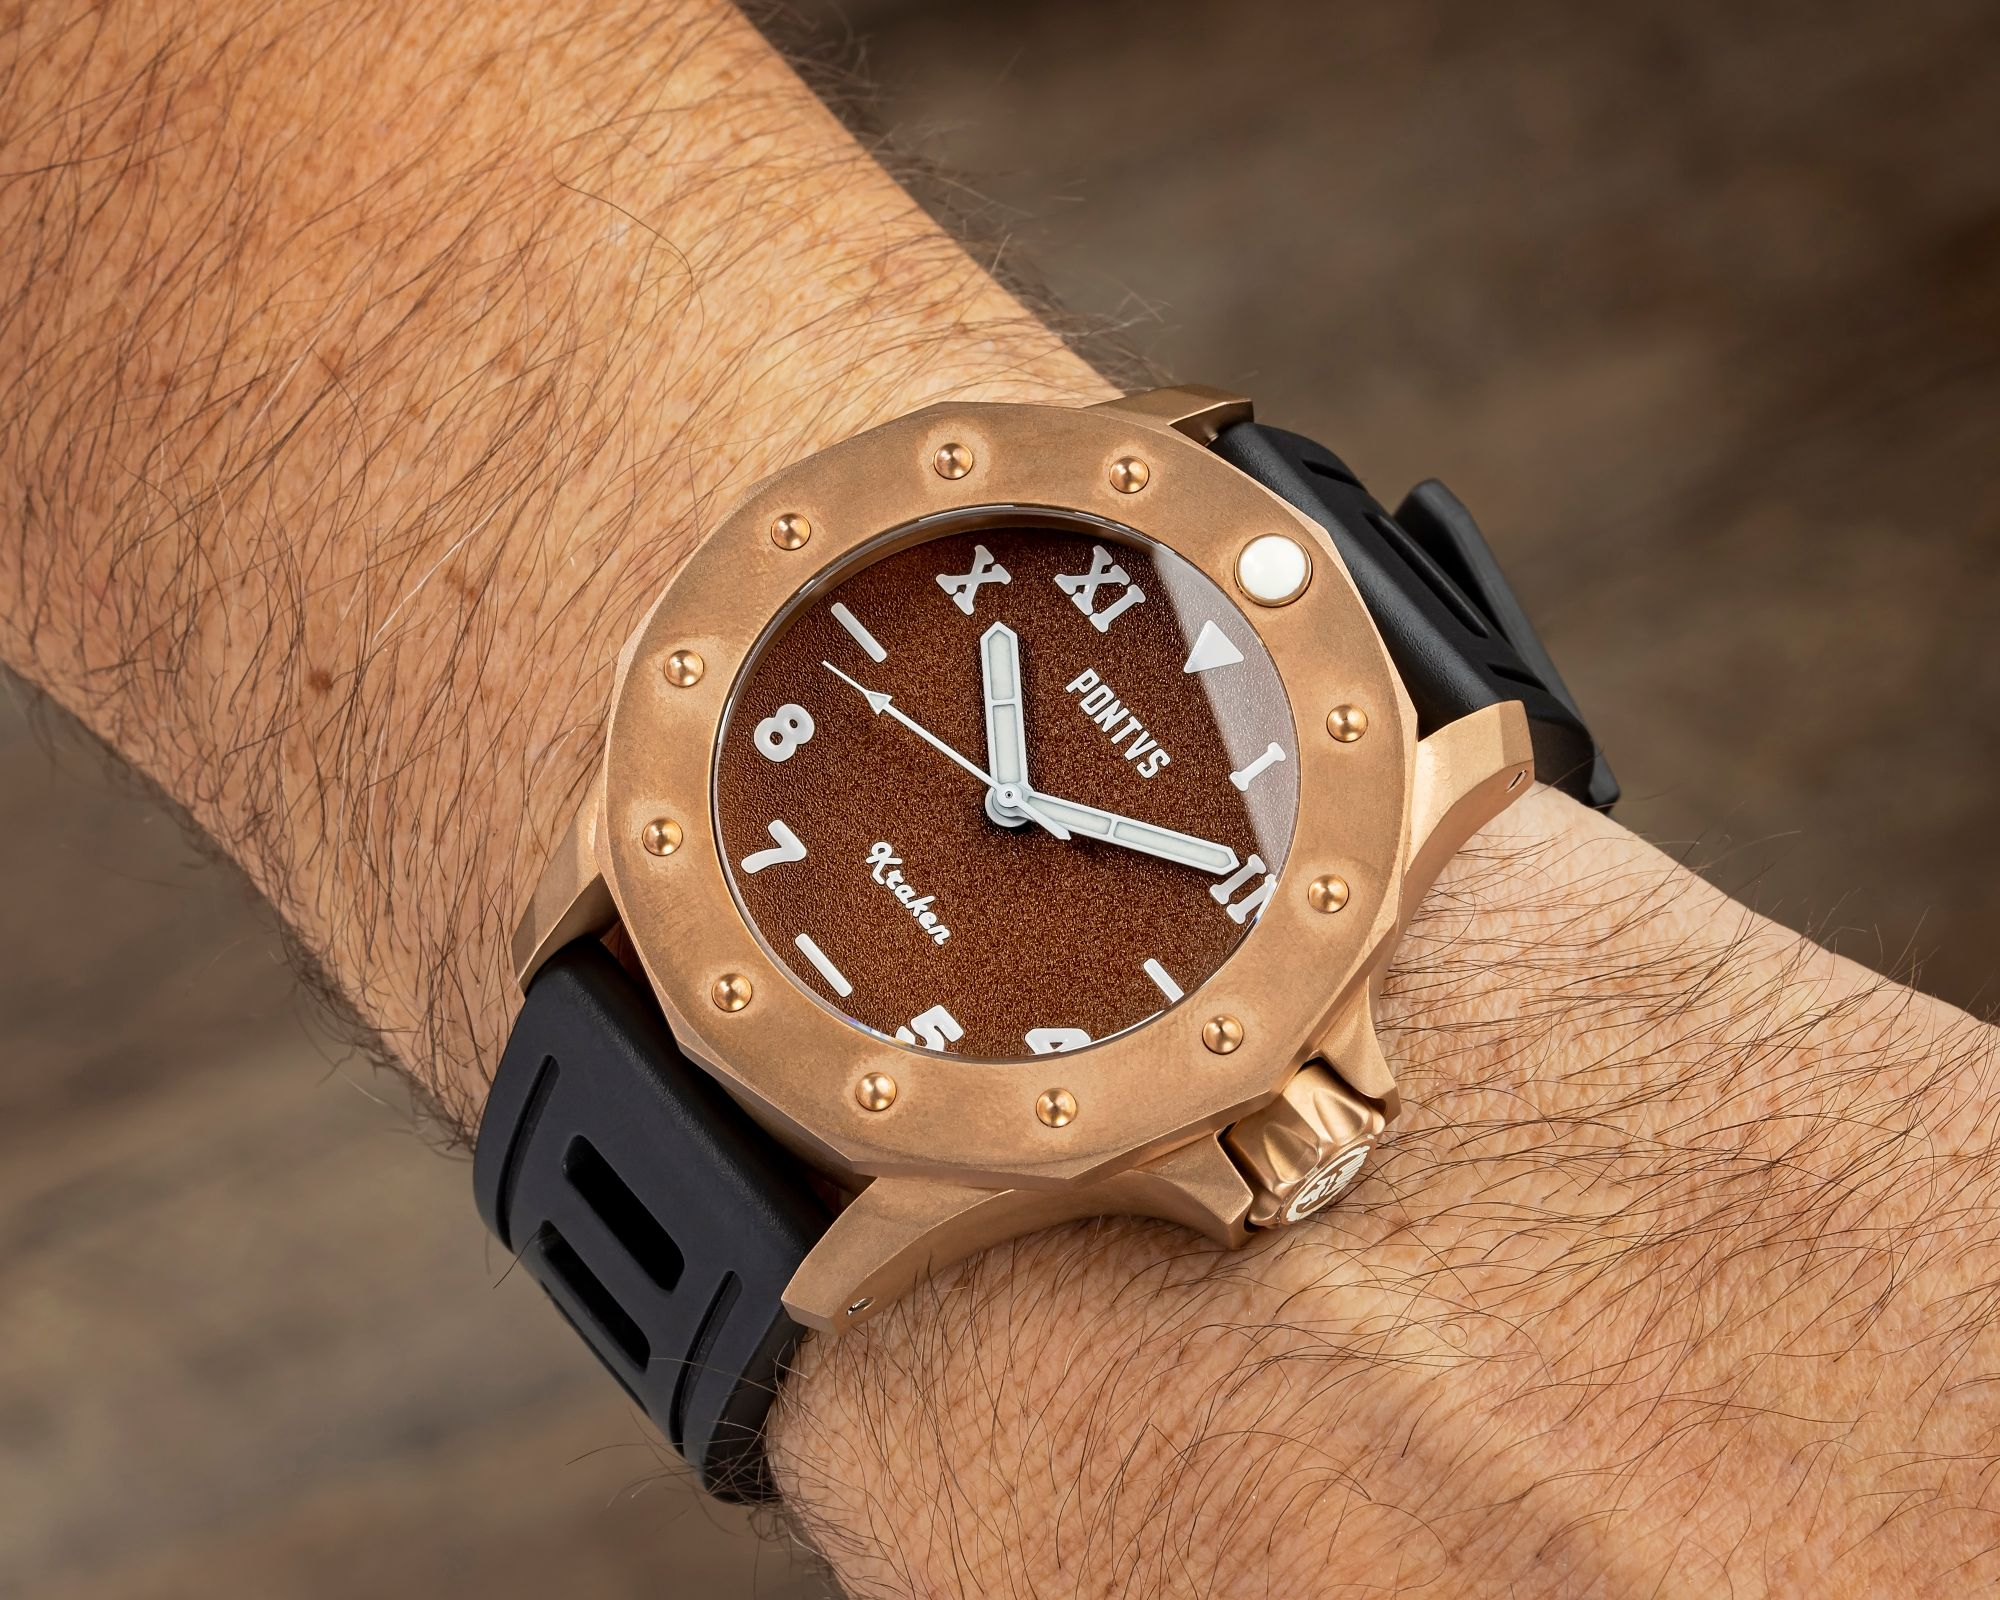 On the Cali brown dial of the Pontvs Kraken, the Super-LumiNova BGW9-printed hours markers are represented in both Roman (top half) and Arabic numerals (lower half).